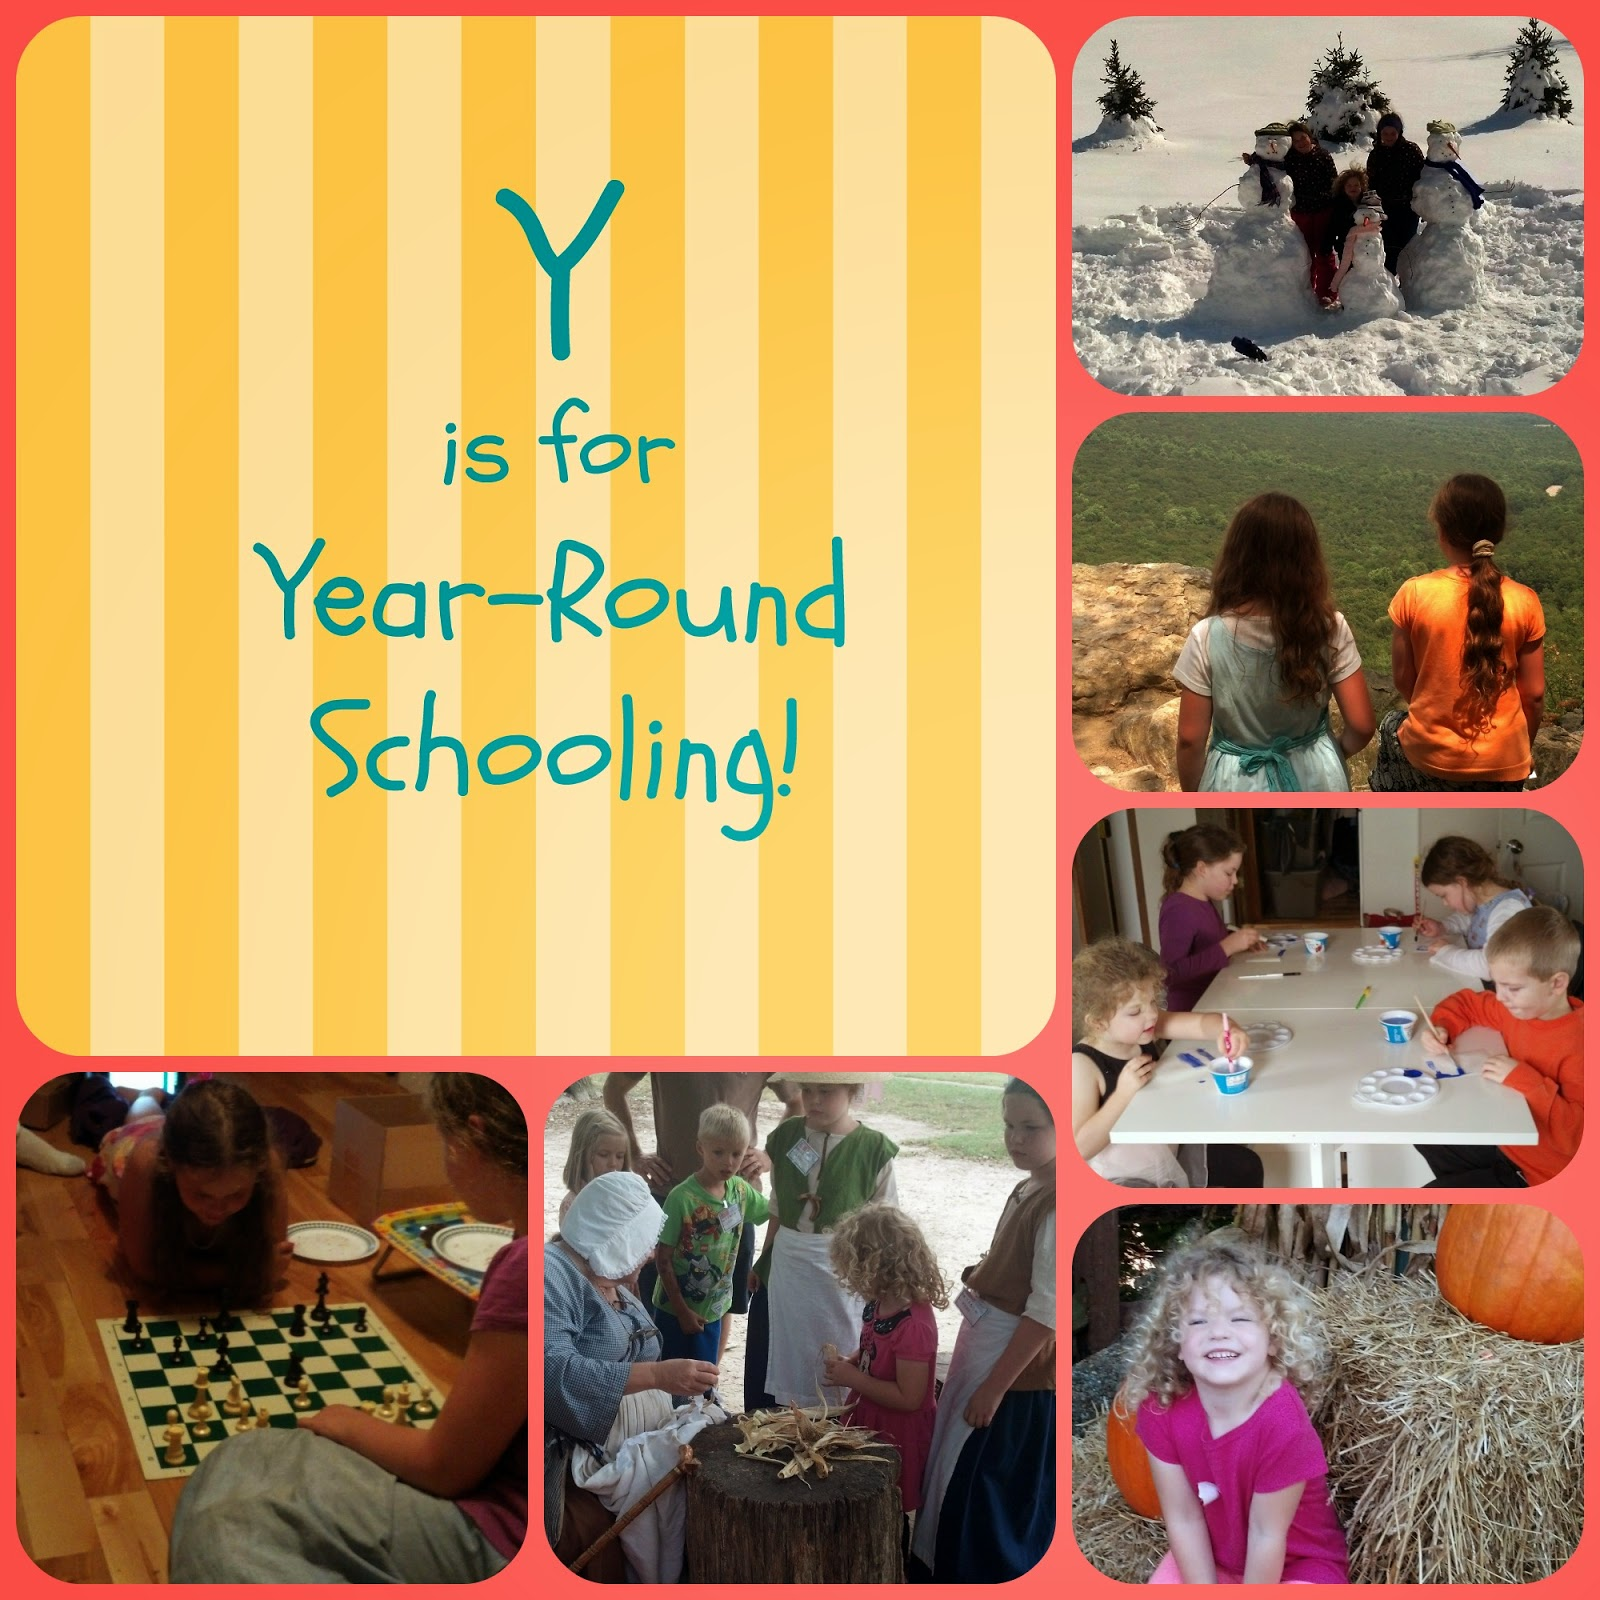 year round schooling the way to go Year-round schooling (yrs), also know as year-round education (yre), is a good way to better students' education it betters students' education by provided more frequent breaks, and giving student opportunites to participate in inter-sessions.